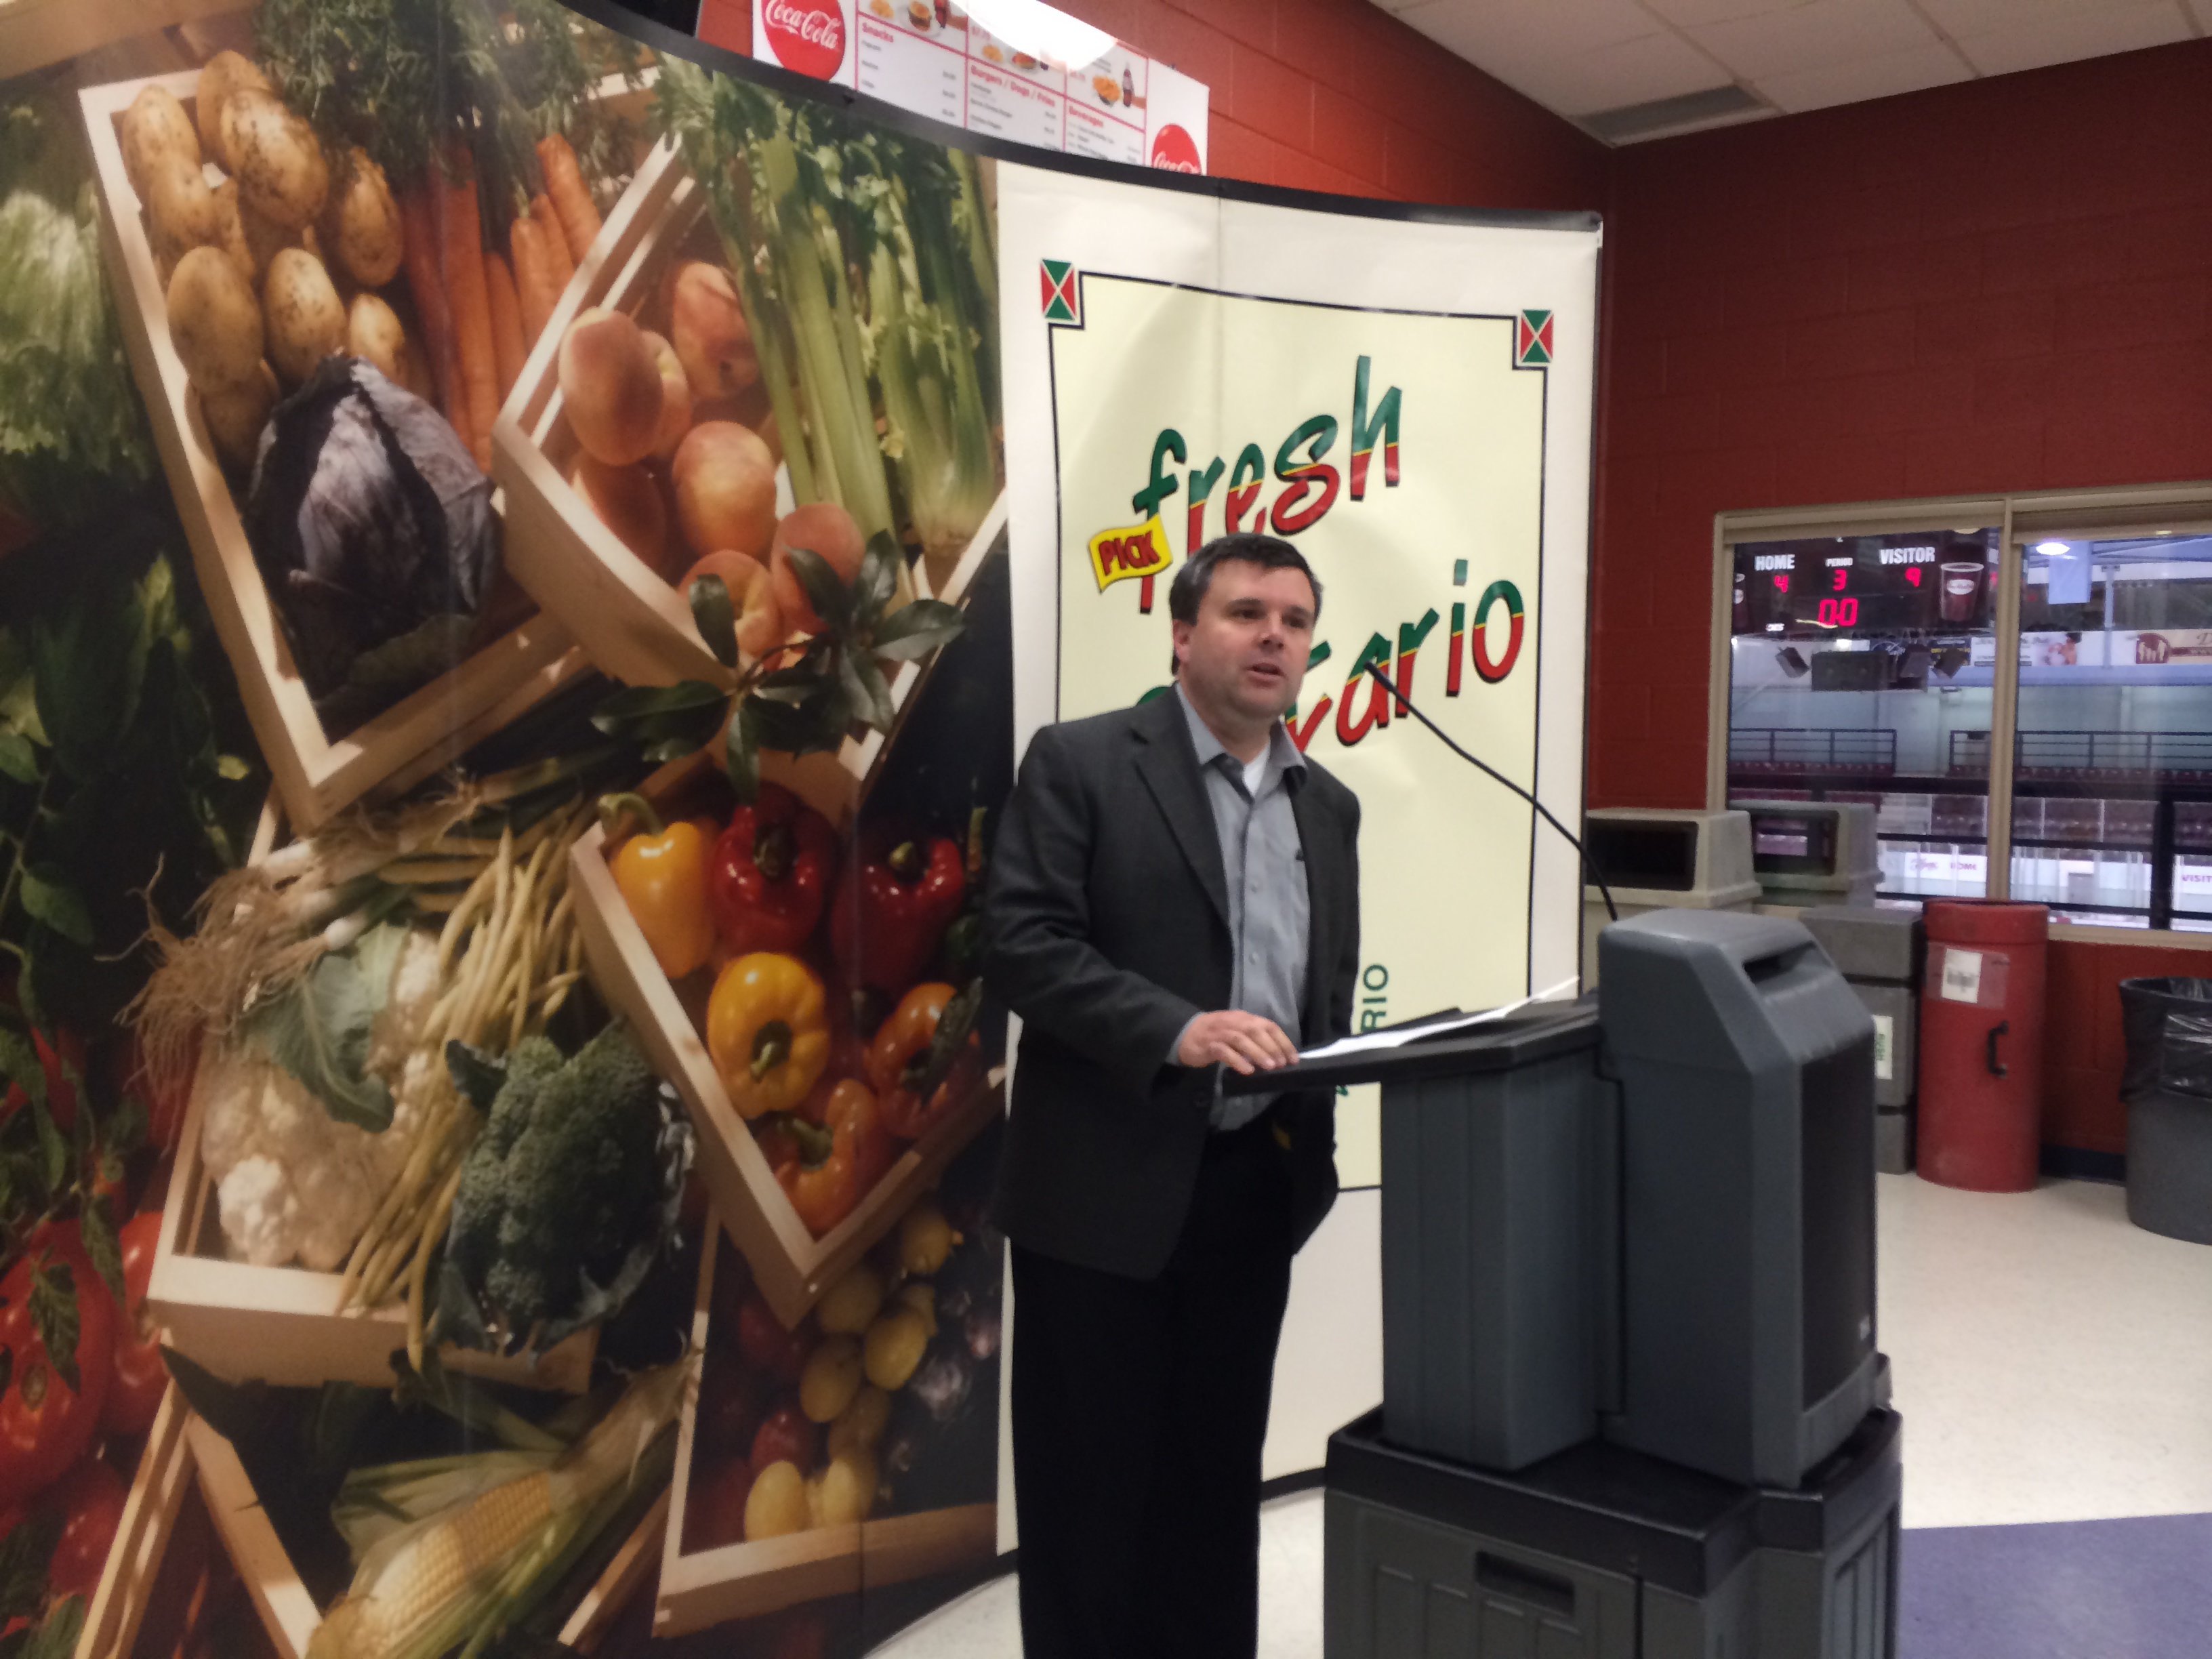 Highbury VP John Krueger speaks at the Leamington Kinsmen Recreation Complex as part of the Southwestern Ontario Horticultural Expo on November 18, 2014. (Photo by Ricardo Veneza)